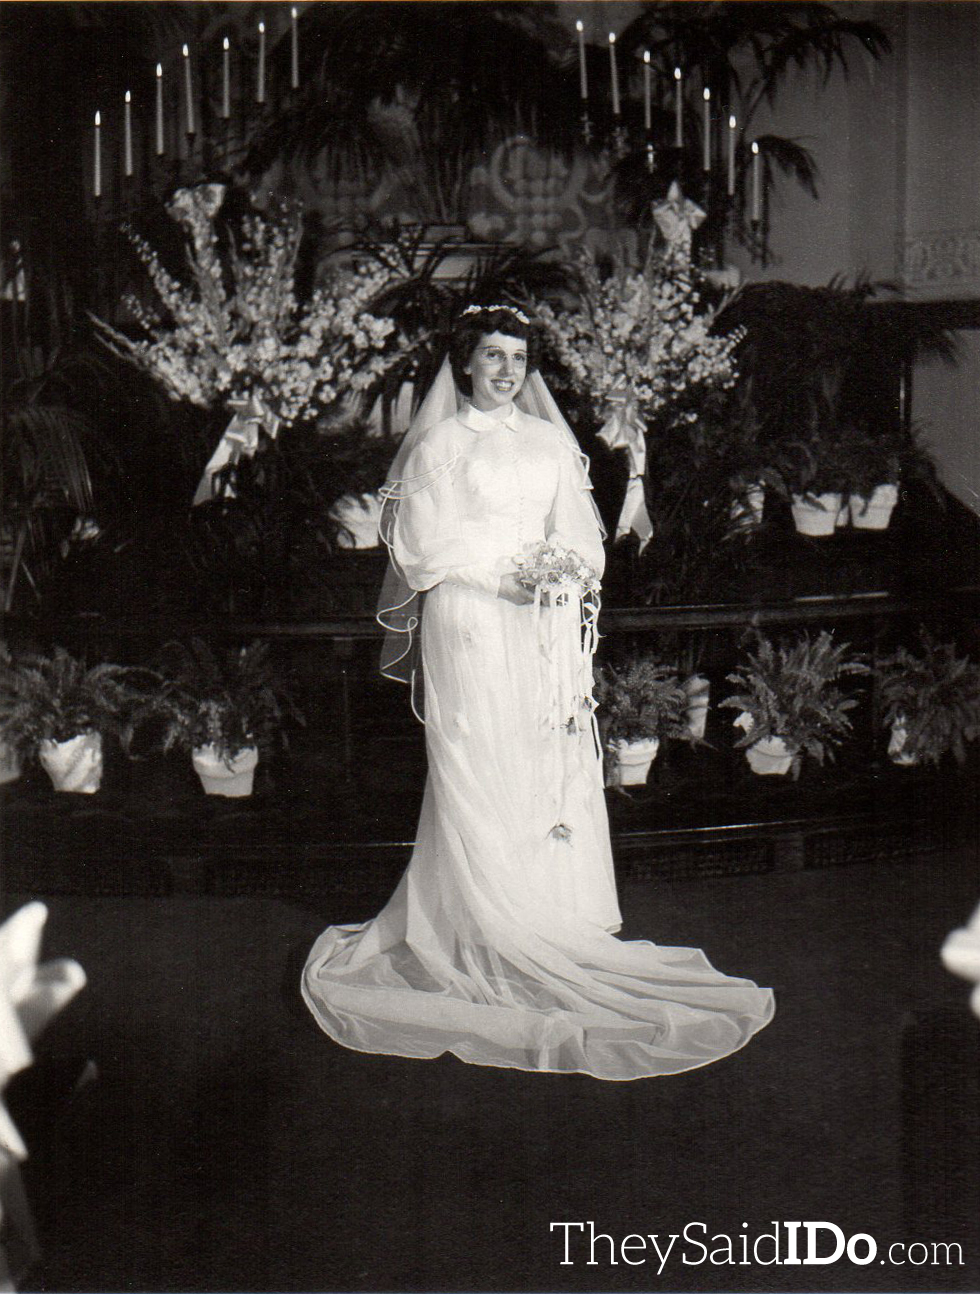 The bride, Inez. Notice the striking resemblance between her and her sister! Lansing, MI 1951 {TheySaidIDo.com}